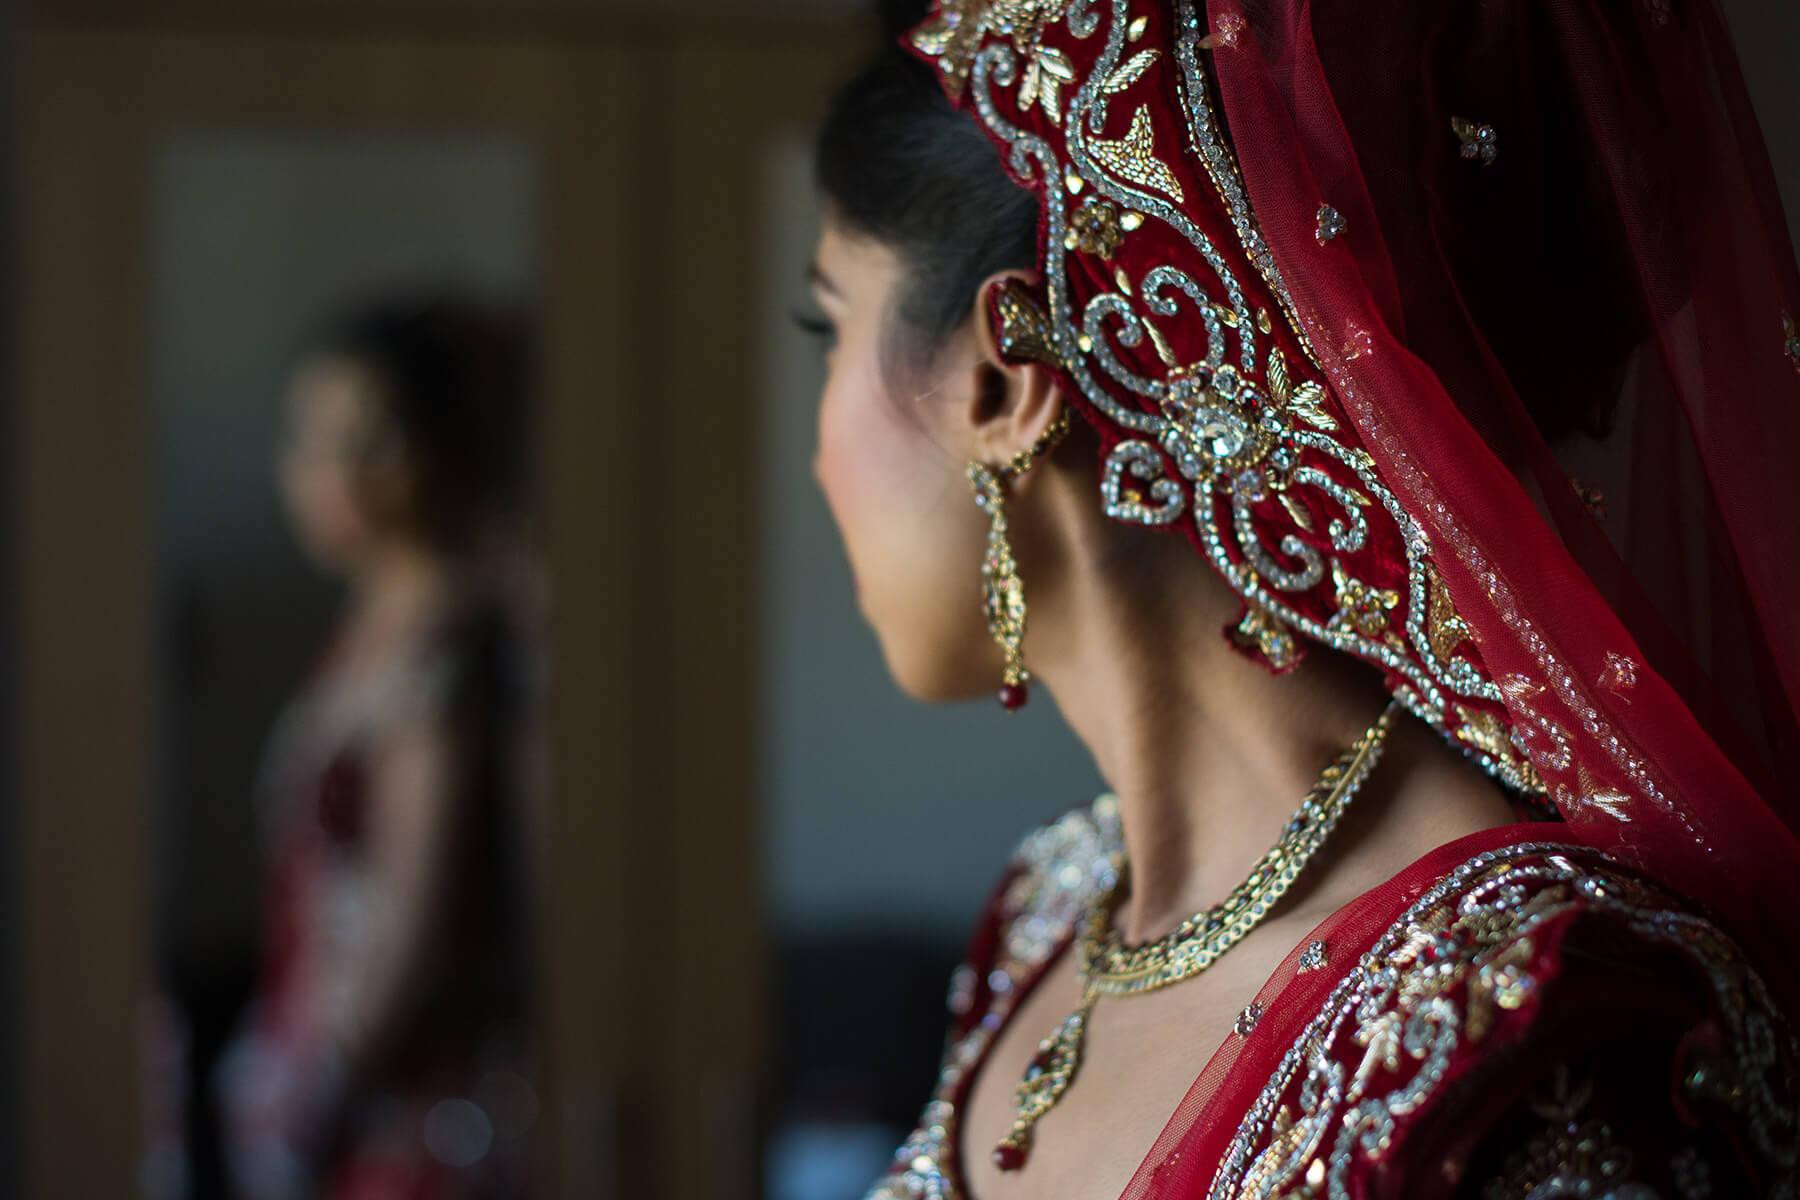 10 Things to Consider When Choosing Your Indian Bridal Outfit